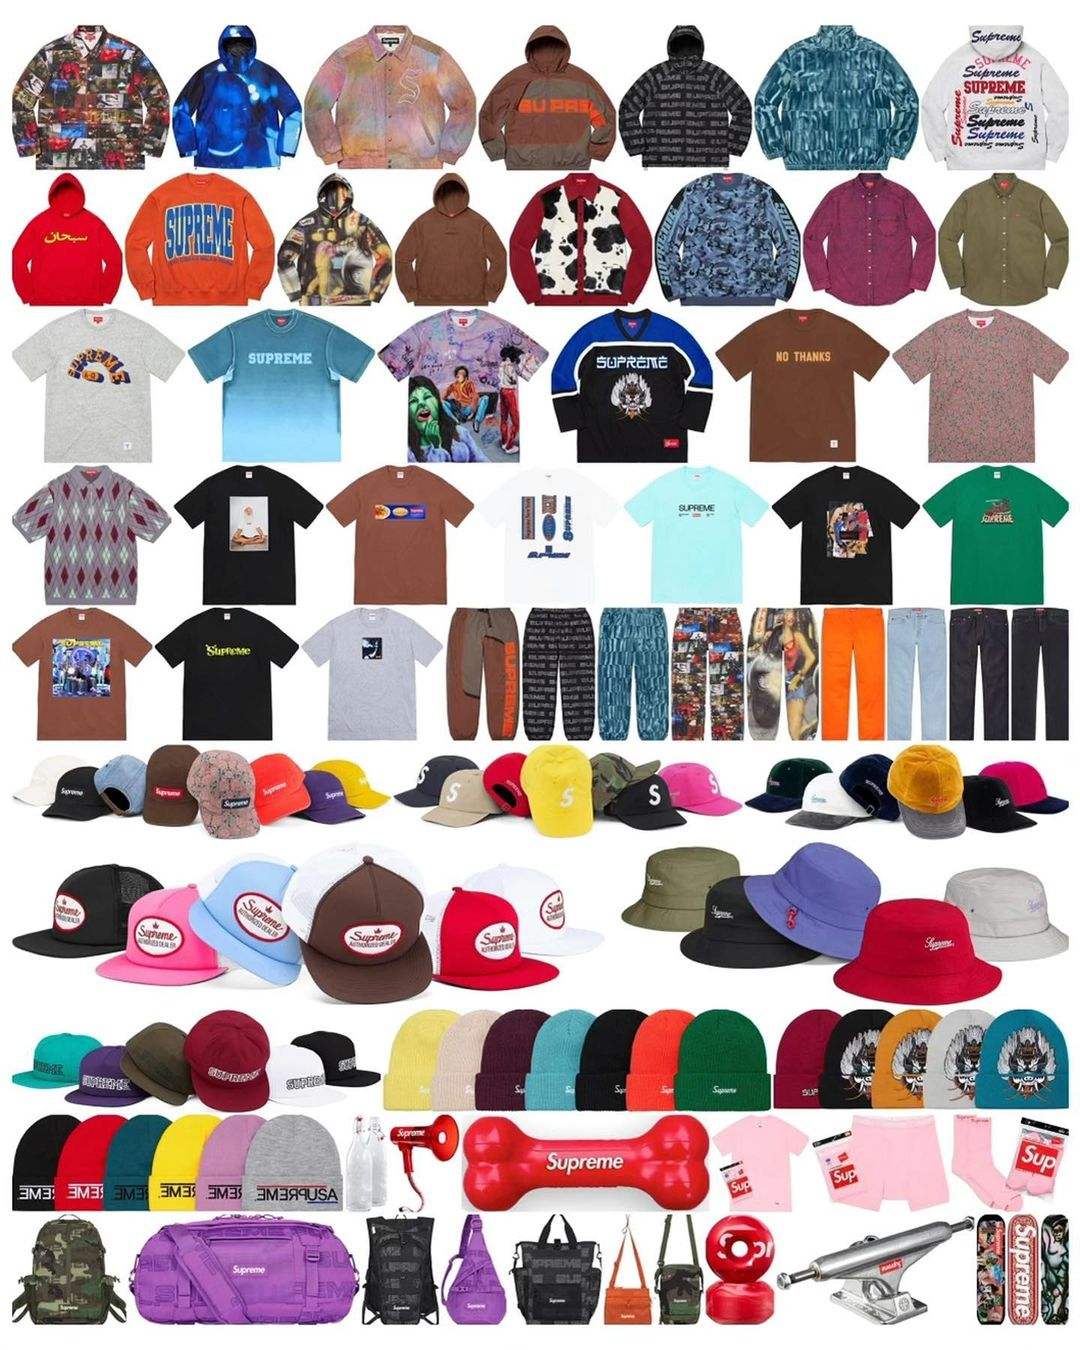 supreme-21aw-21fw-launch-20210821-week1-release-items-list